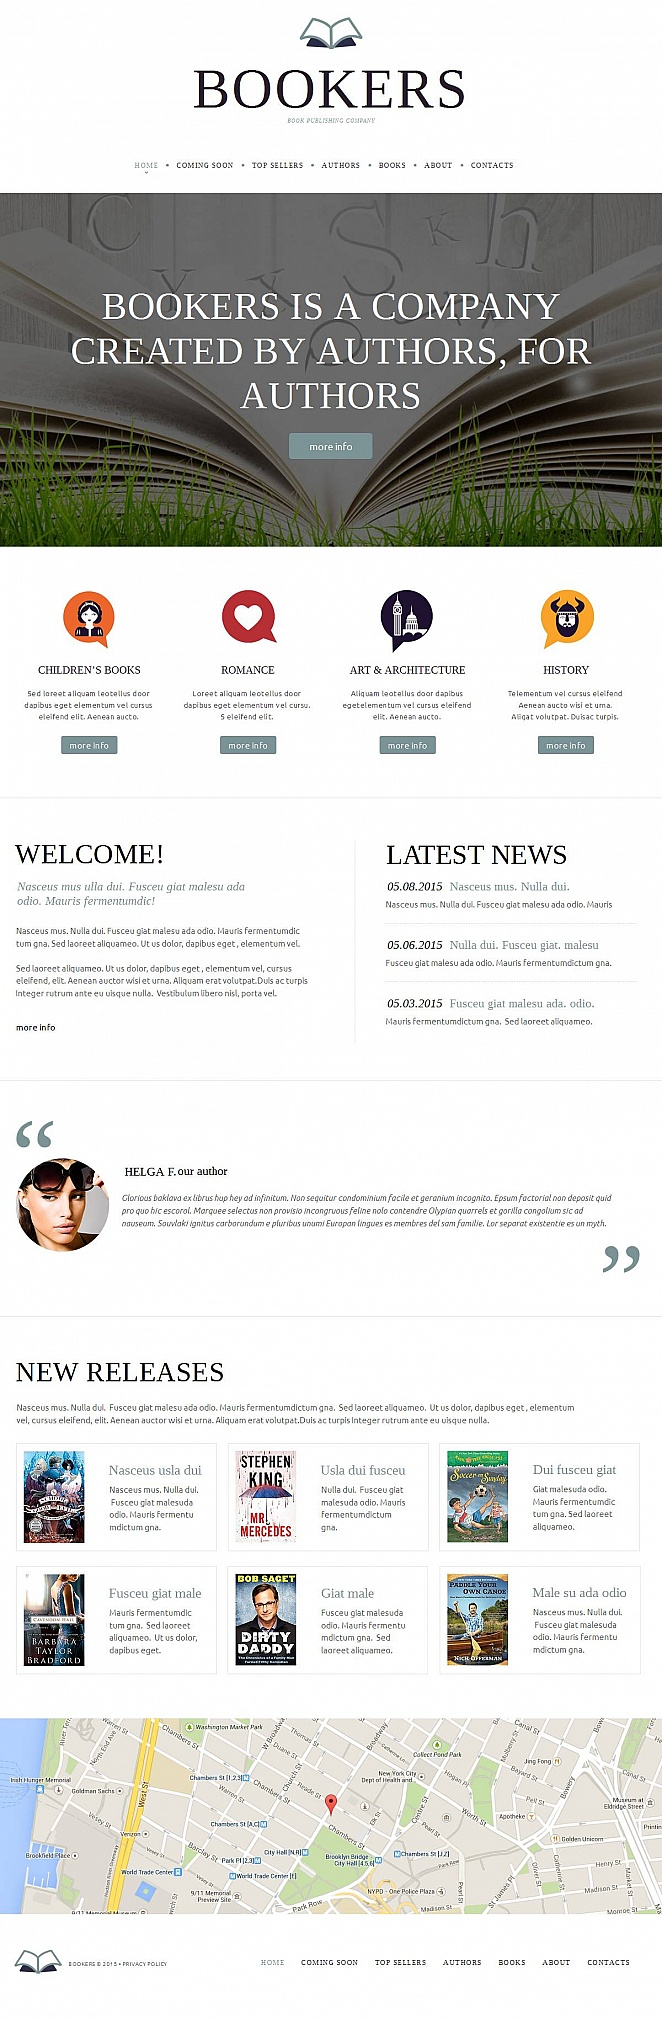 Publishing Company Website Template - image